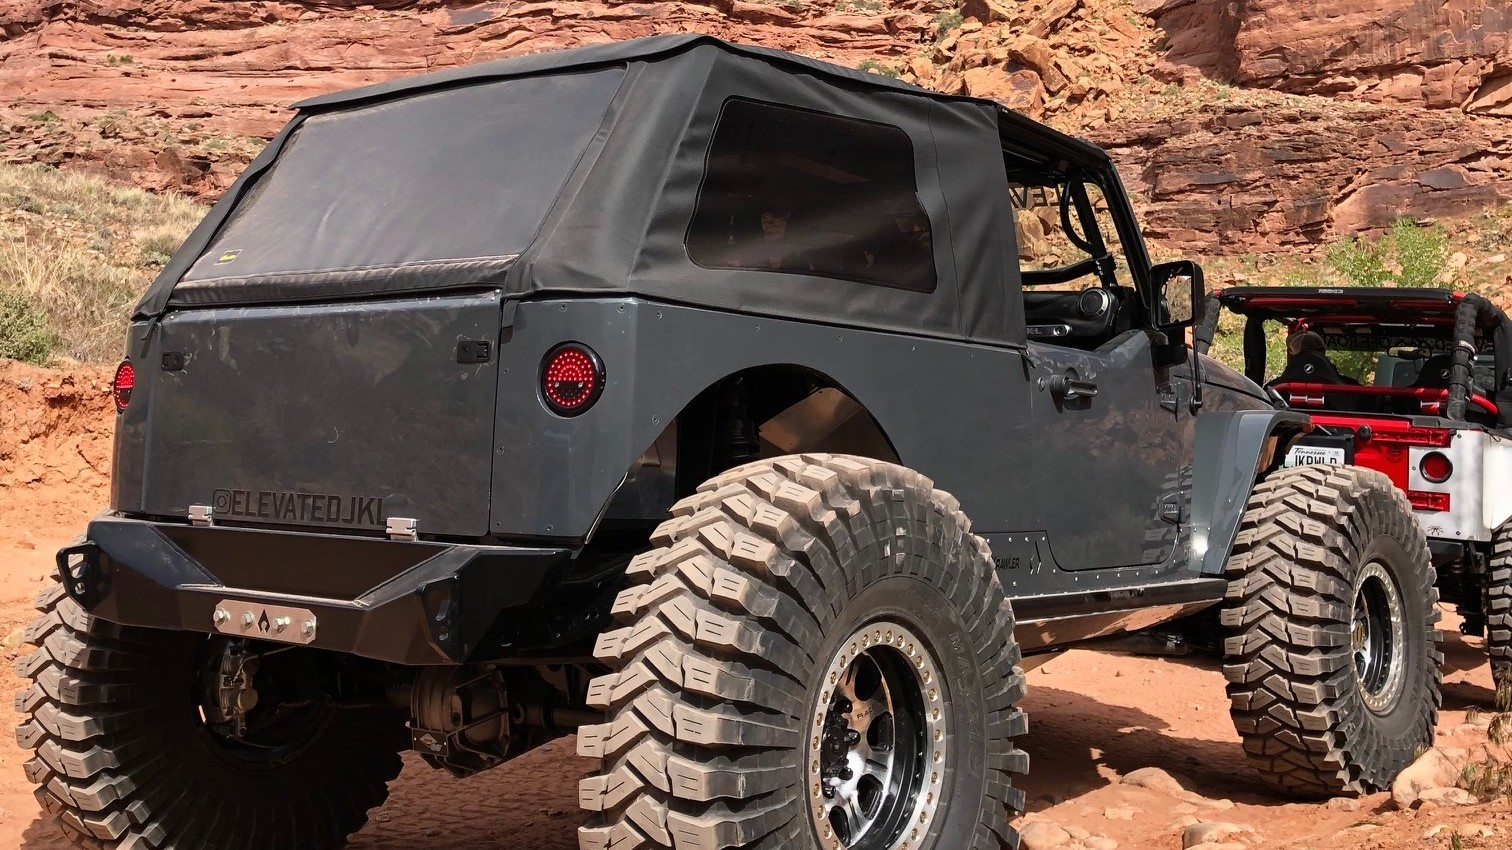 2015 Jeep Wrangler JK Willys Wheeler 2dr 4x4